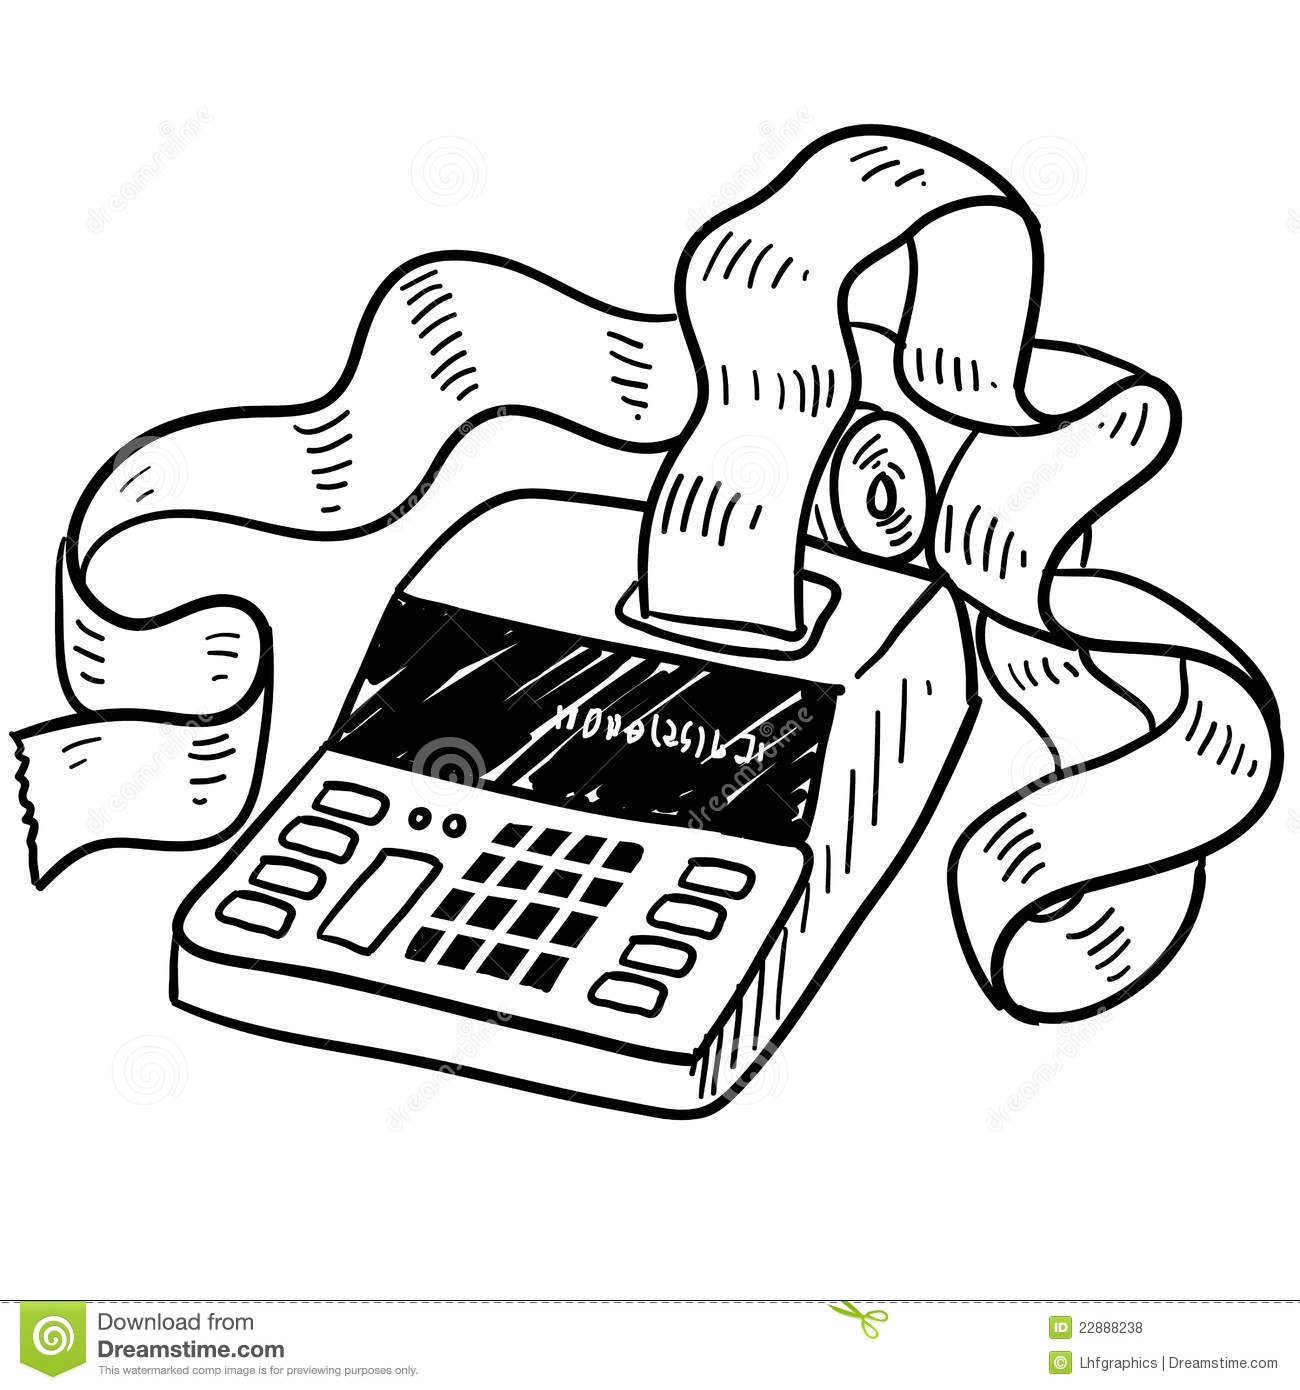 Adding machine sketch stock illustration. Illustration of